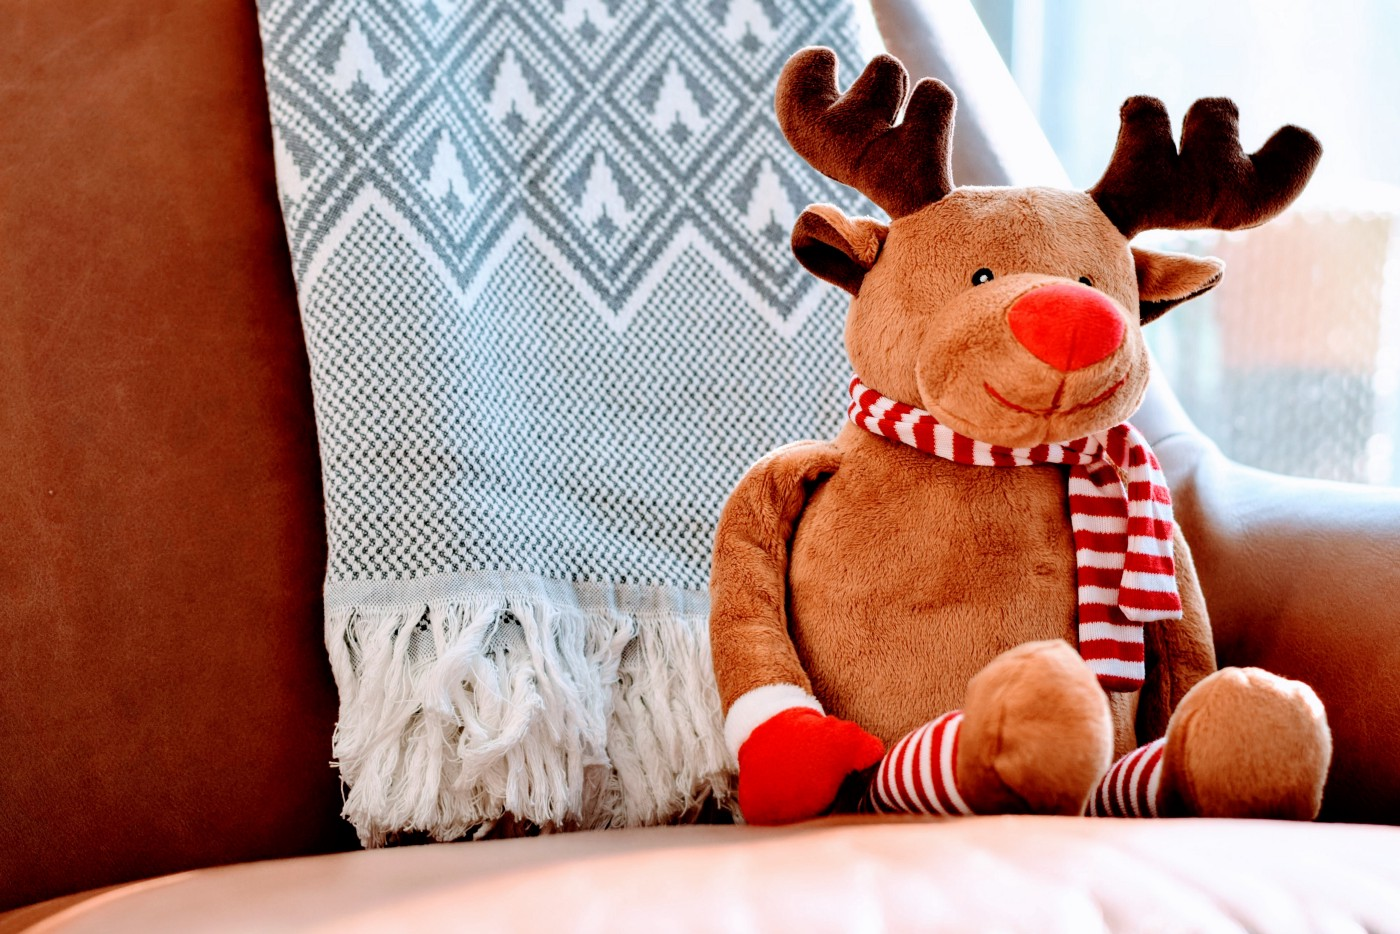 A stuffed Rudolph the Red Nosed Reindeer smiles and sits on a couch. He wears a striped candy cane scarf and matching gloves